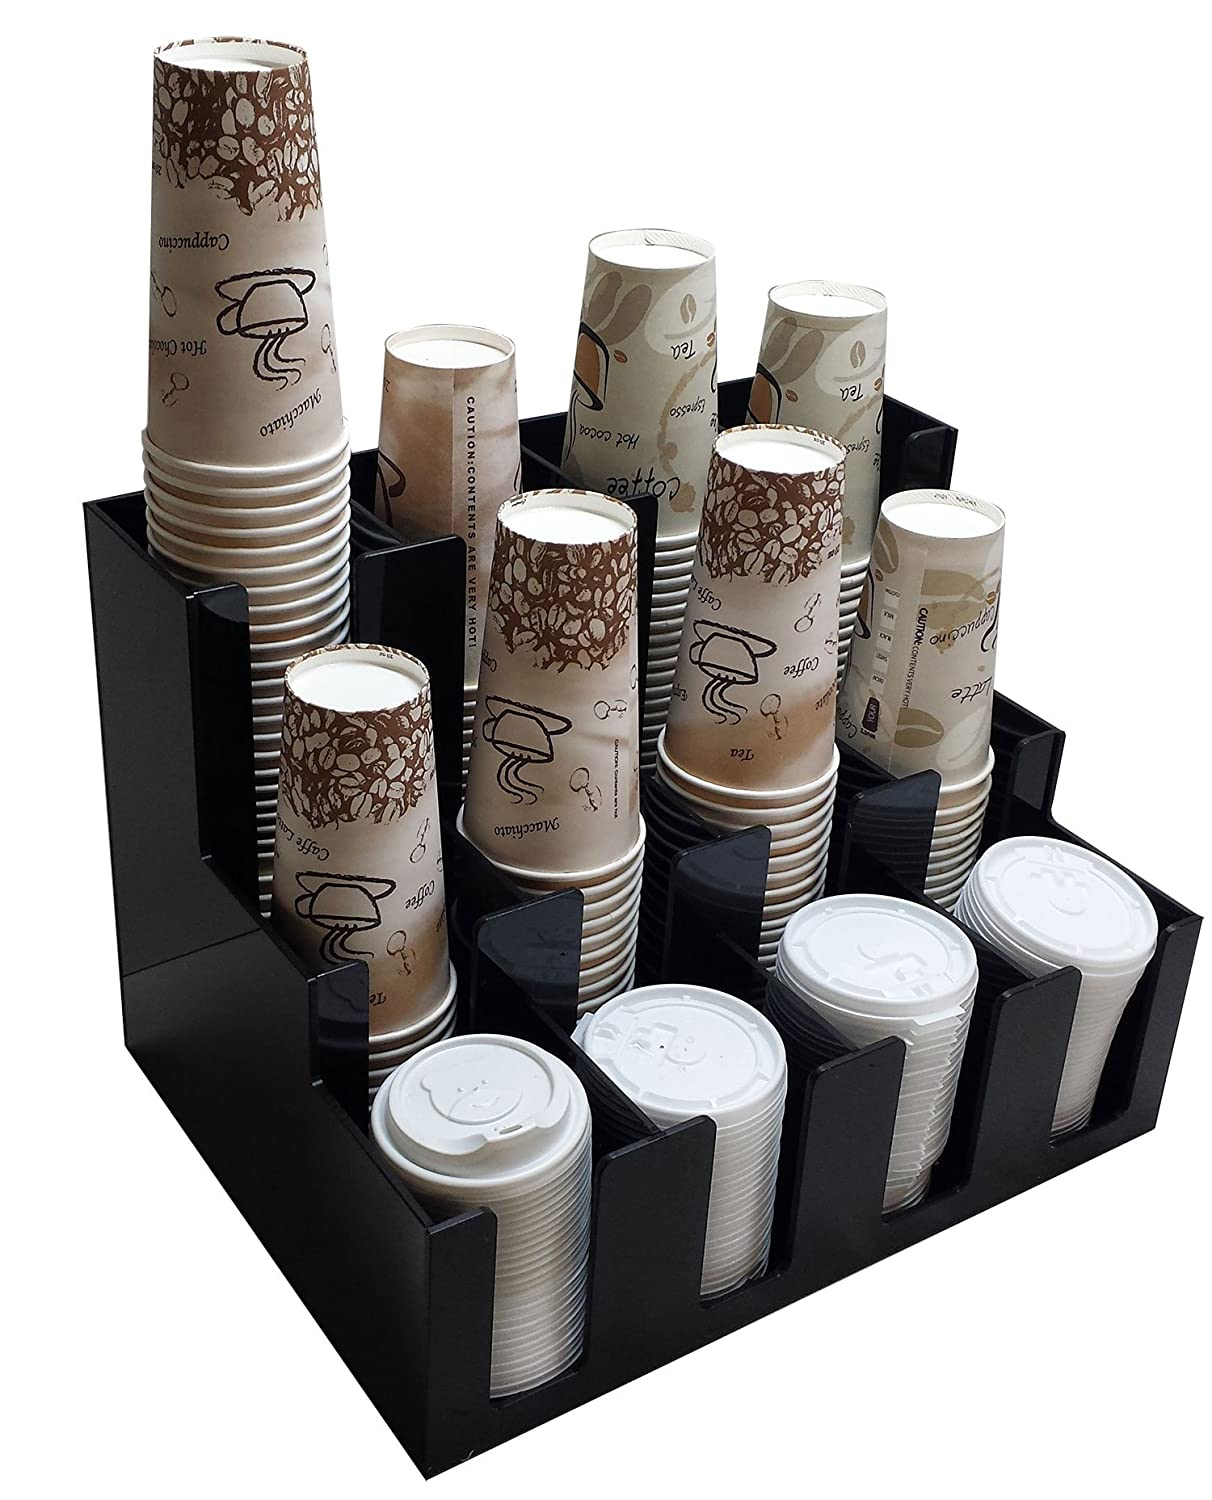 Verticle Coffee Cup Dispenser and Lid Holder Condiment